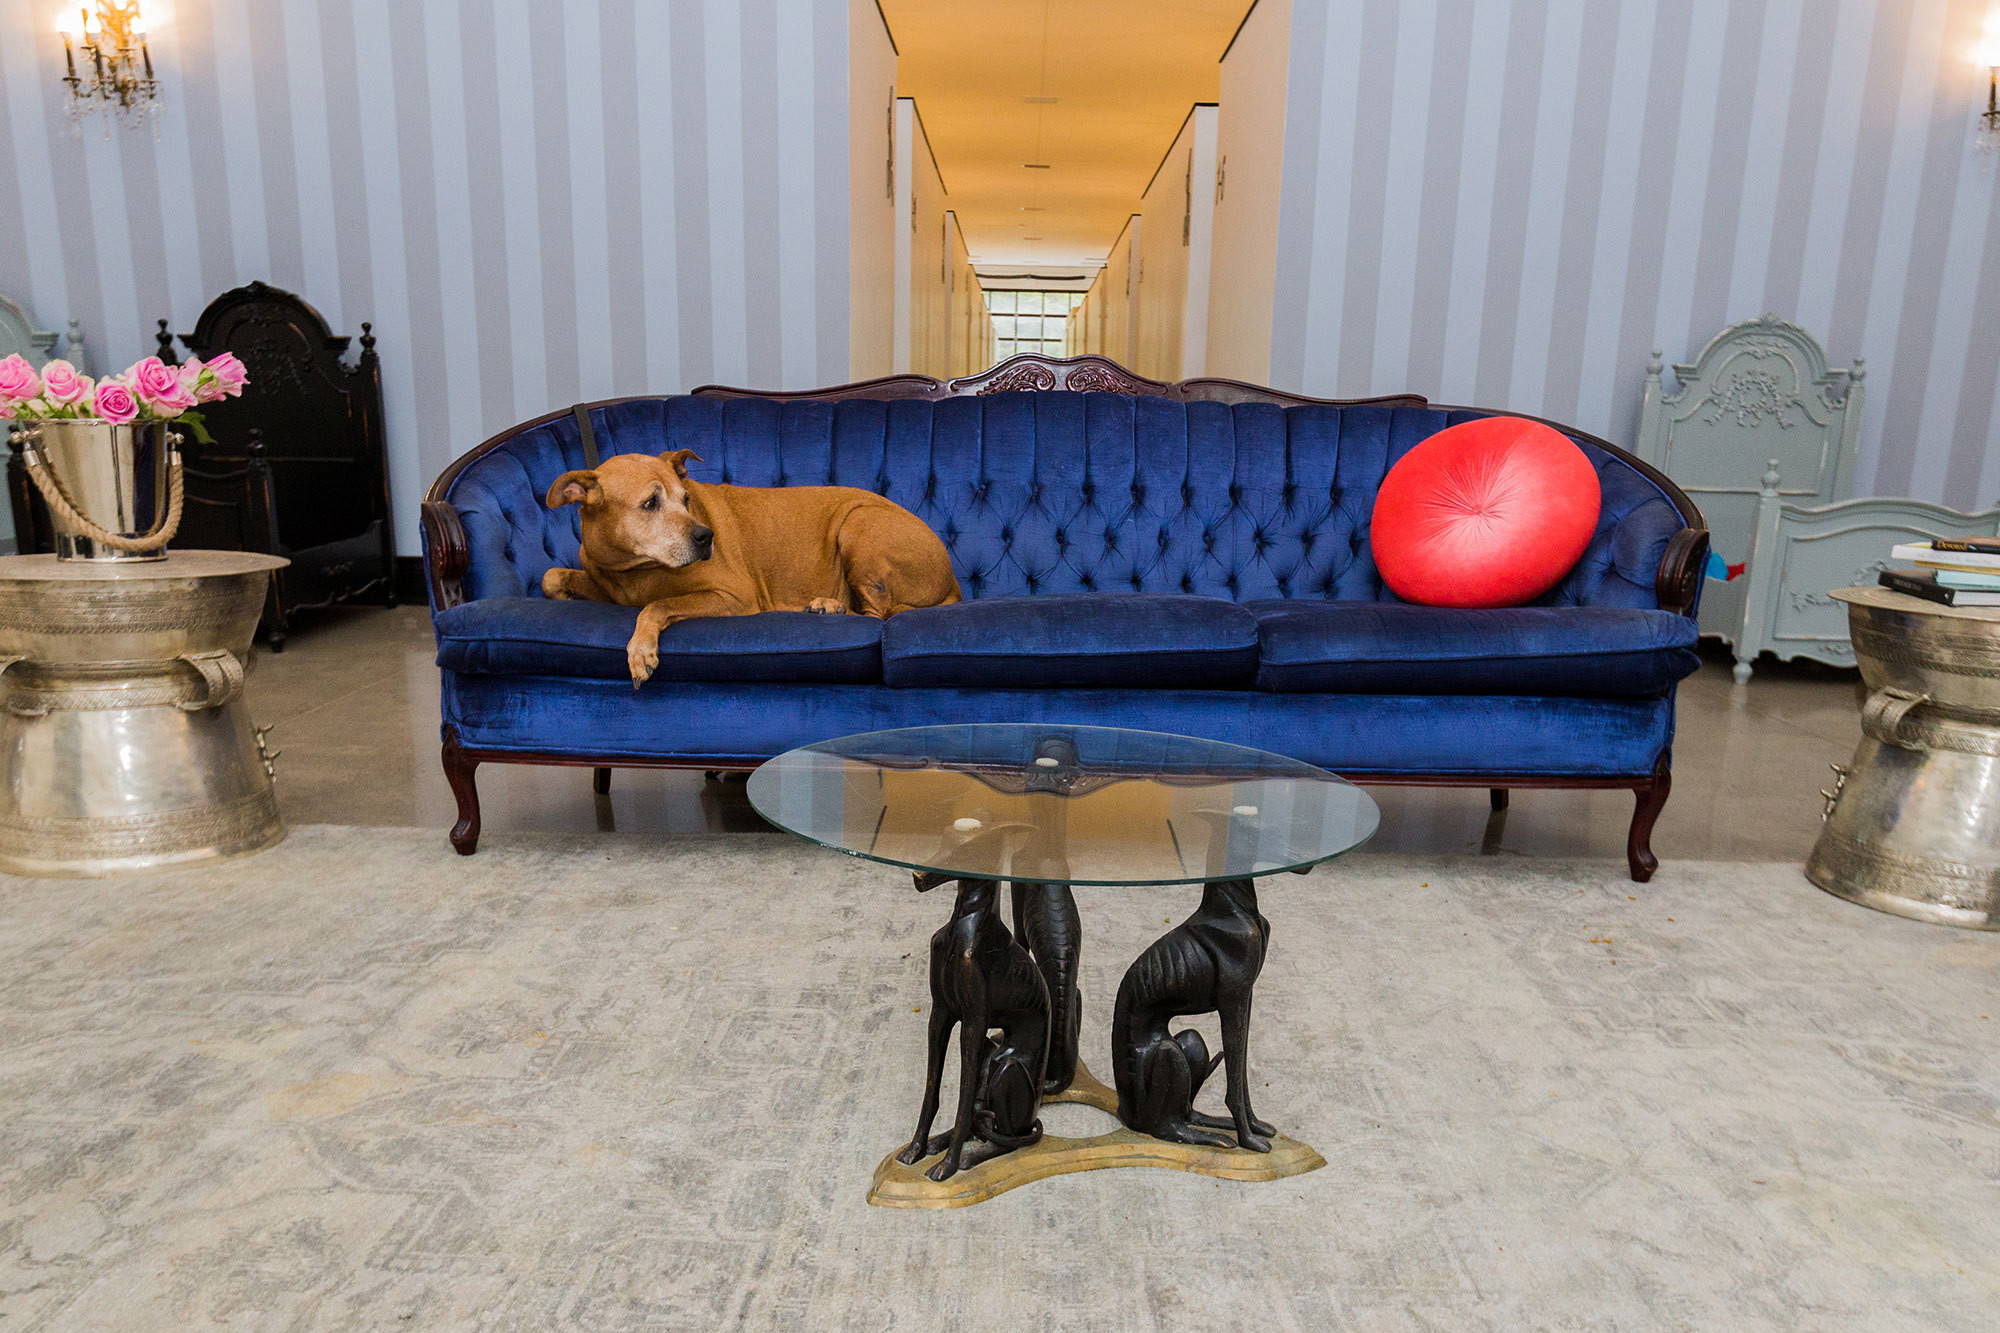 Lady,a senior dog rescued from euthanasia in Miami, lounges on a blue velvet settee at the Dog Talessanctuaryin King City, Ontario. Sheis currently adoption pending. Photography by Kayla Rocca.